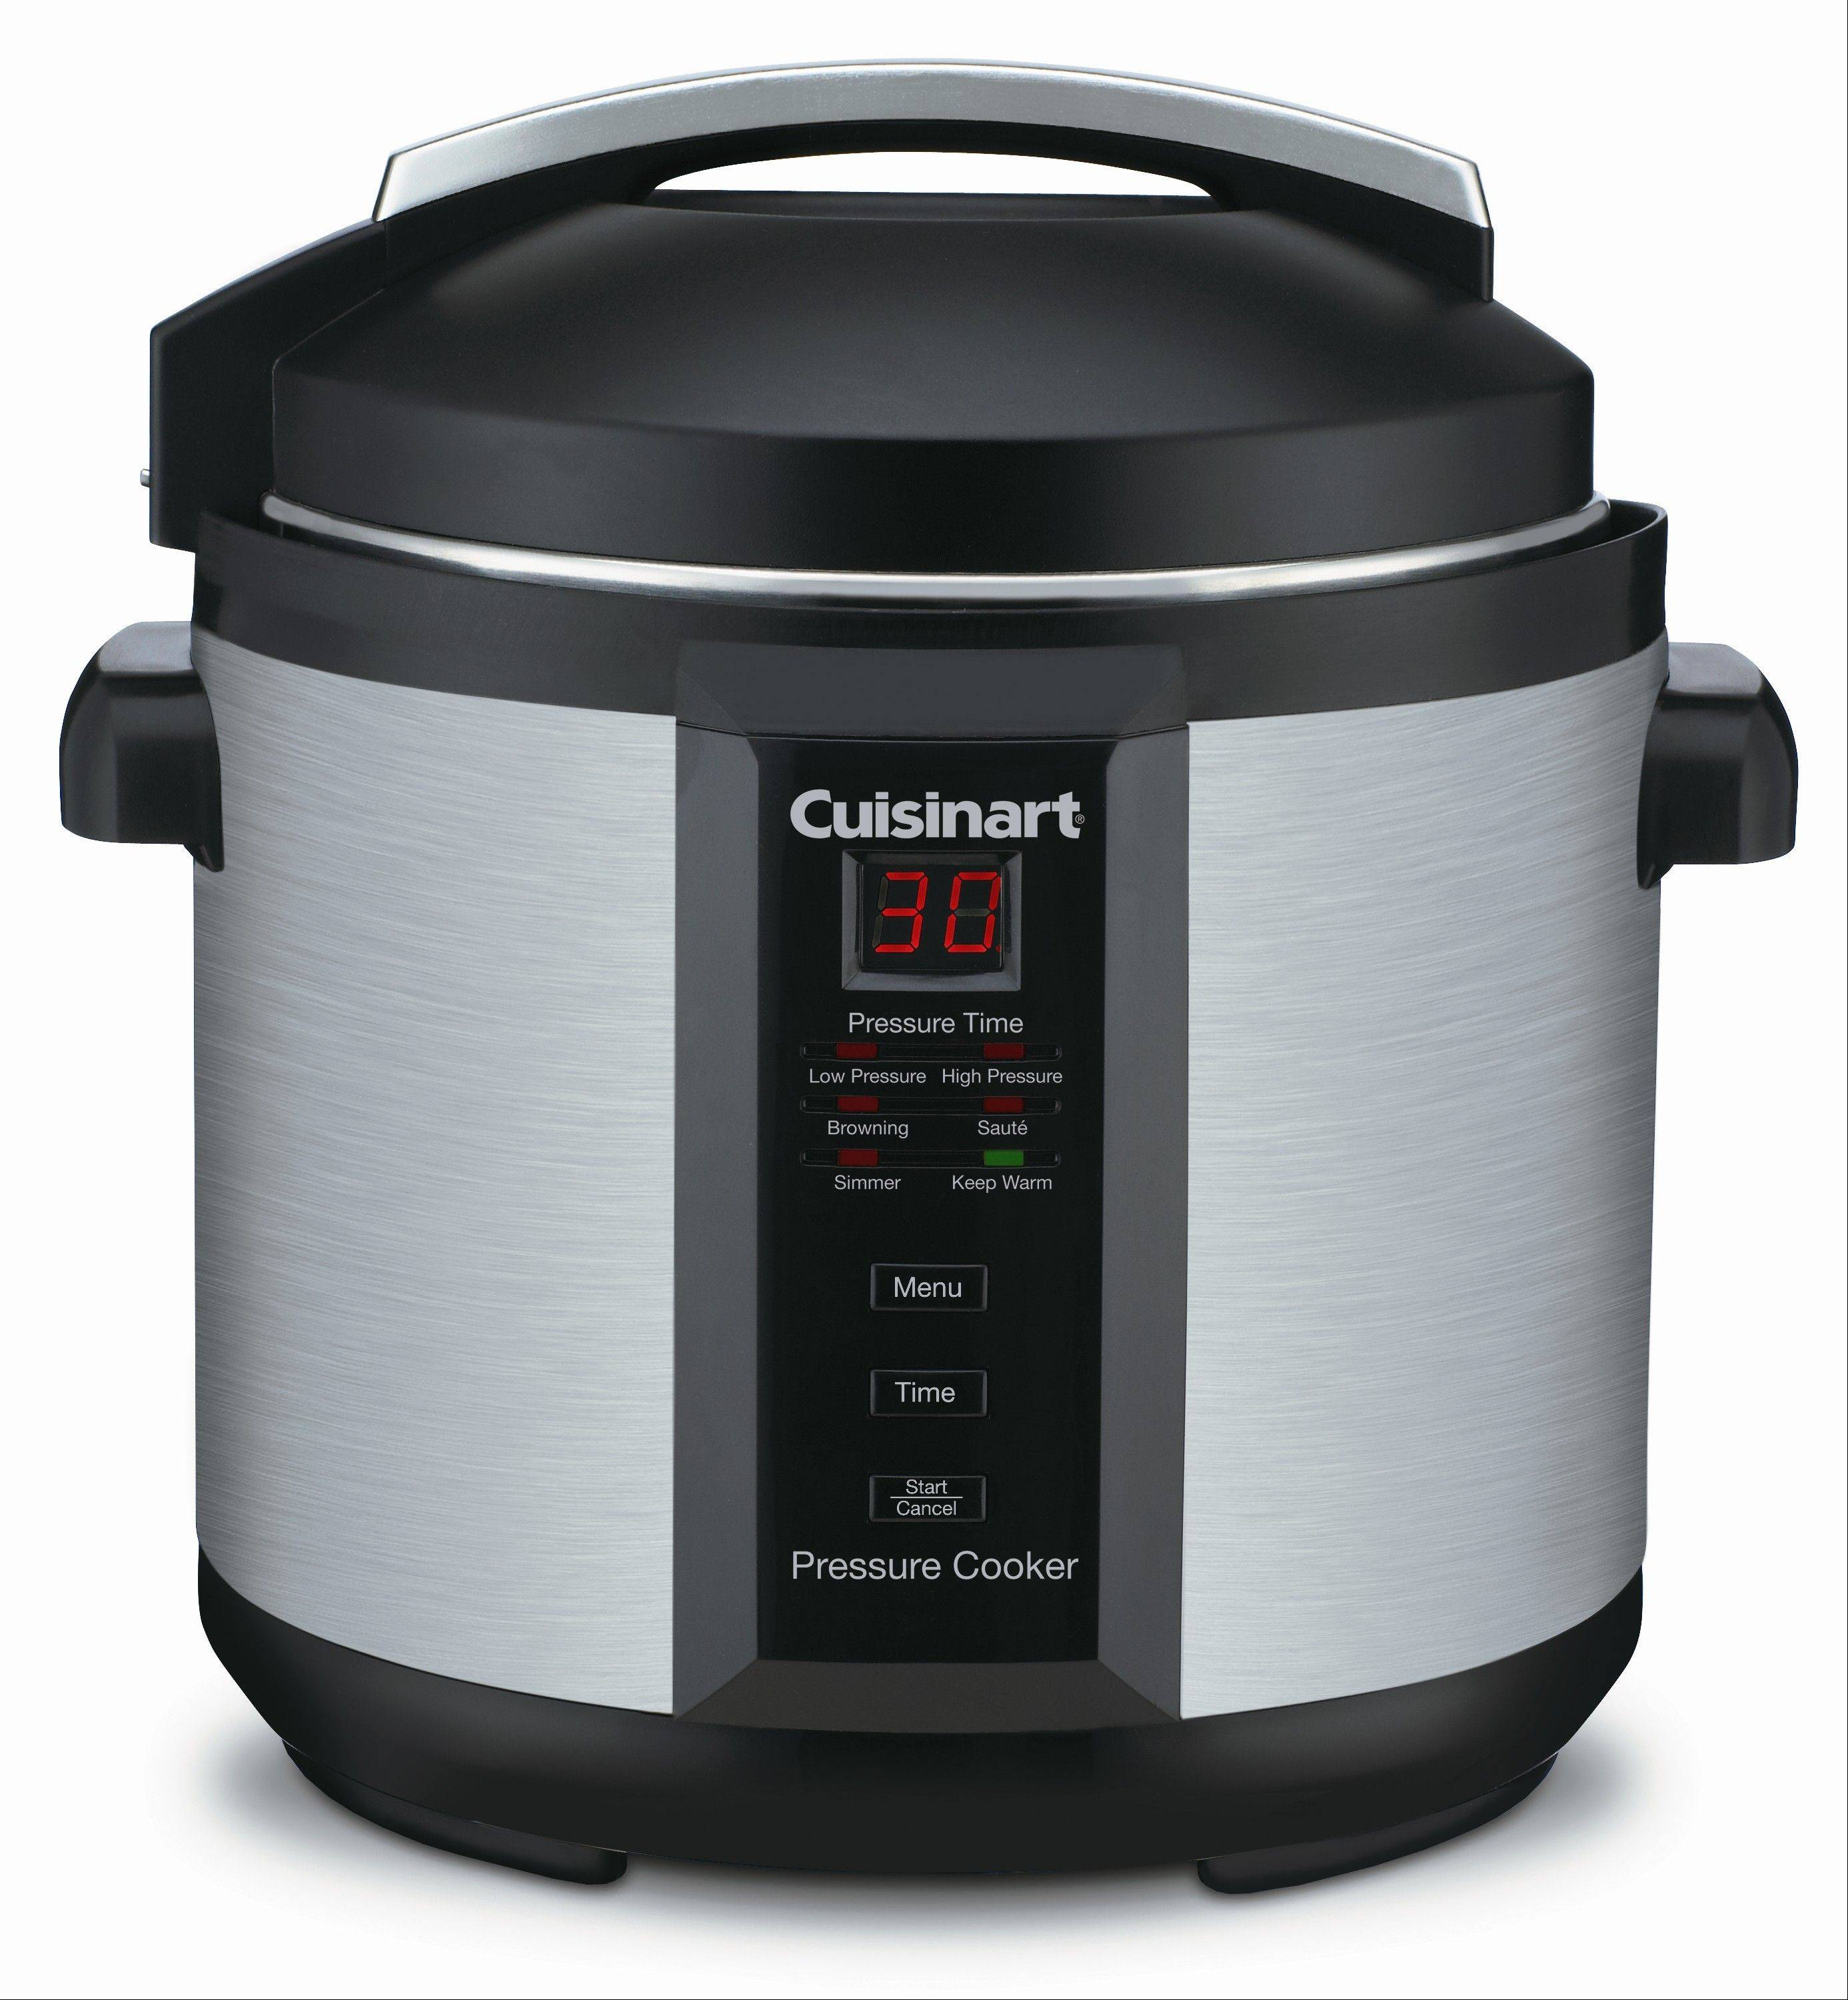 Pressure cookers fit into hectic, healthful lifestyles